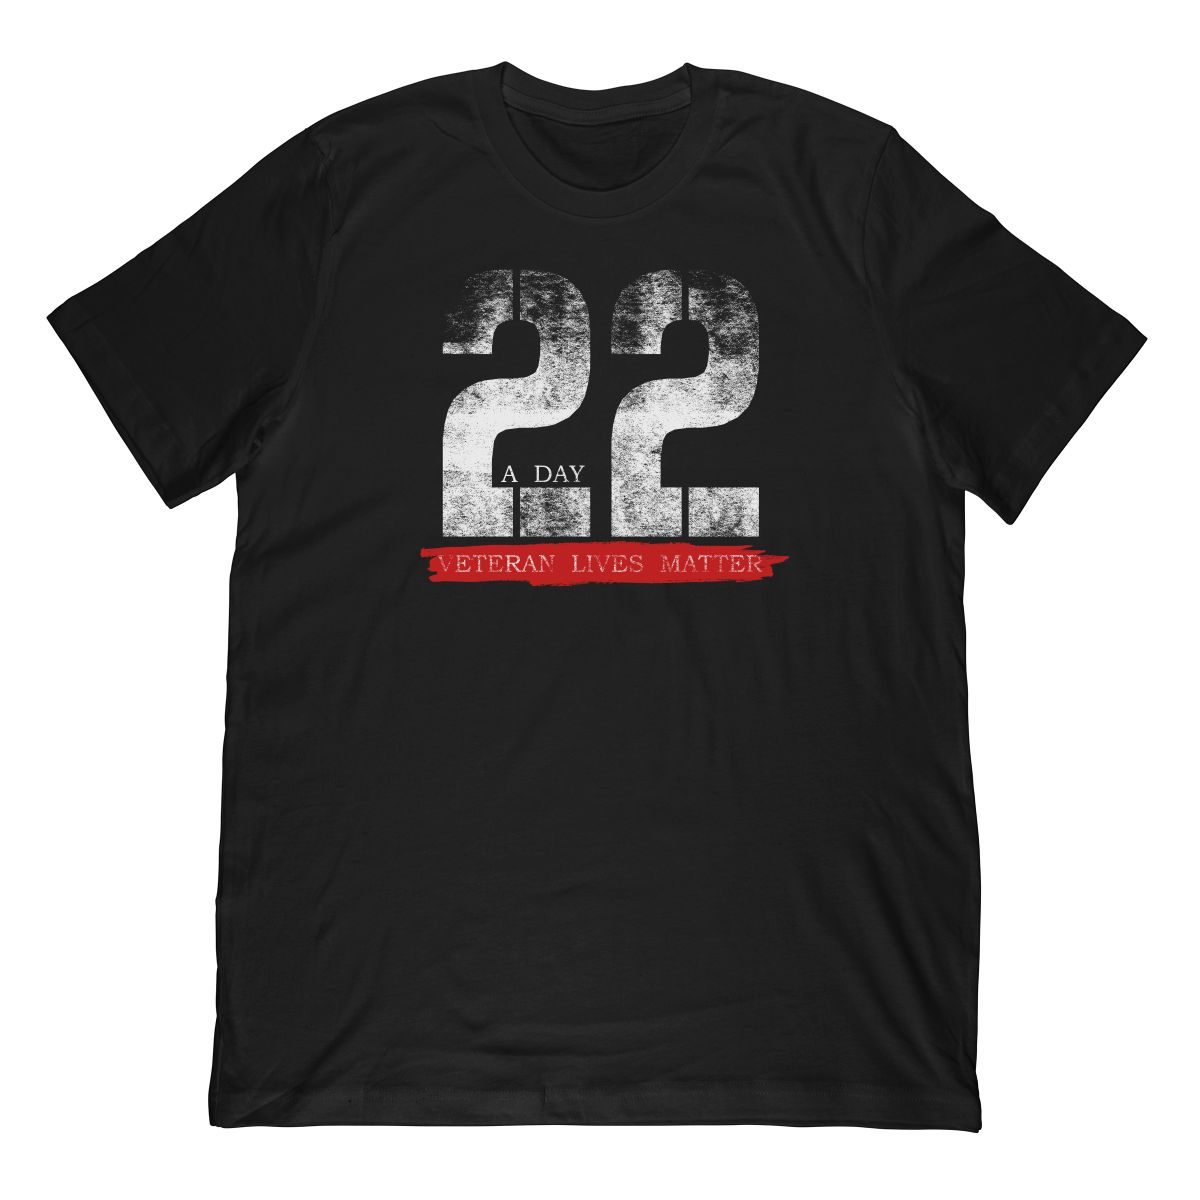 22 A Day, Veteran Lives Matter, Veteran Suicide Awareness T-Shirt